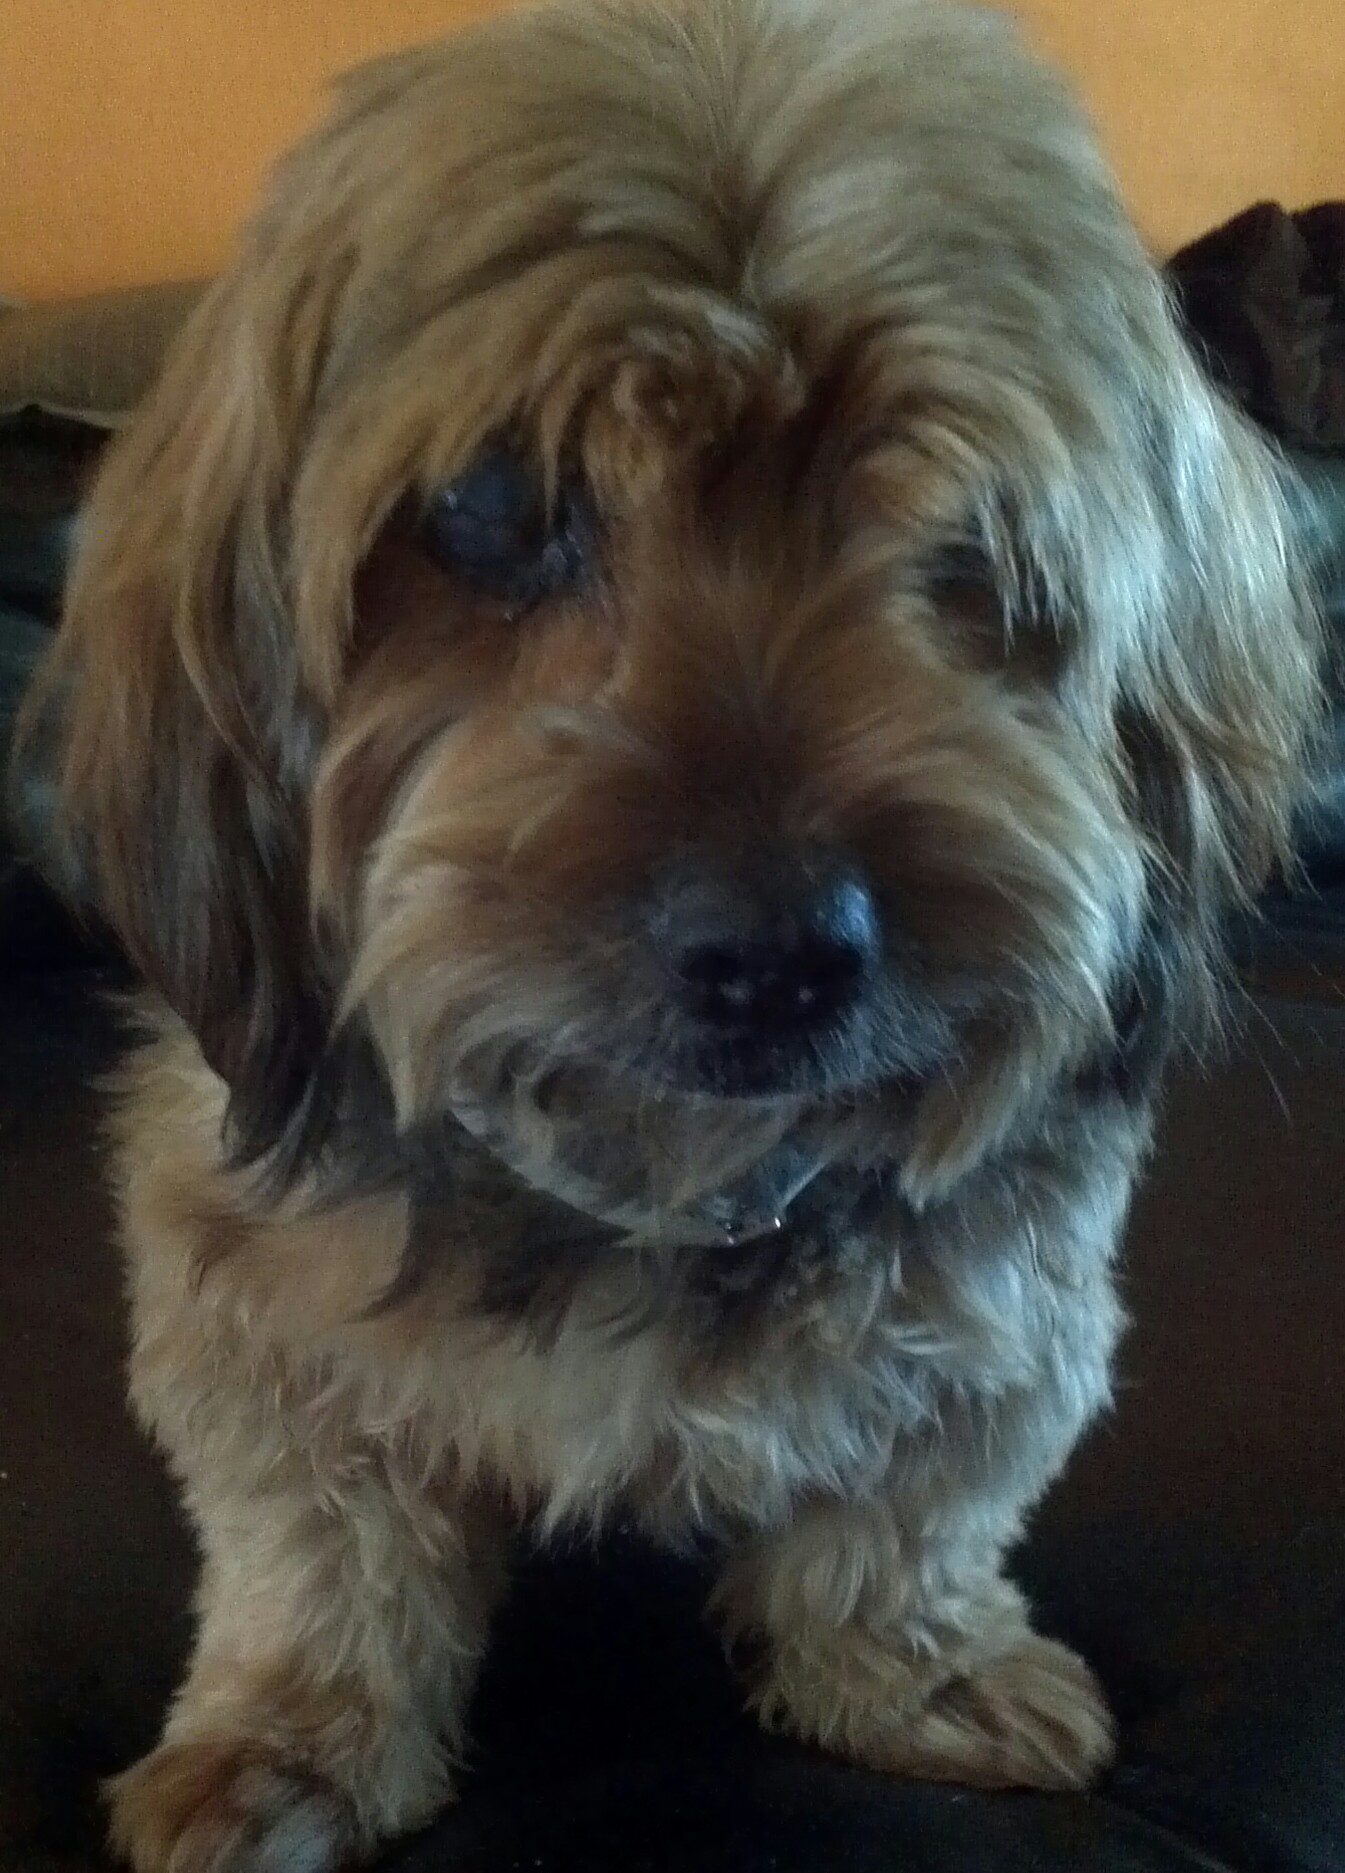 courtesy postings destiny for dogs not for profit c  my is tommy and i am 8 years old i was an owner surrender i am blind but i hear and listen very well i am eager to please you and